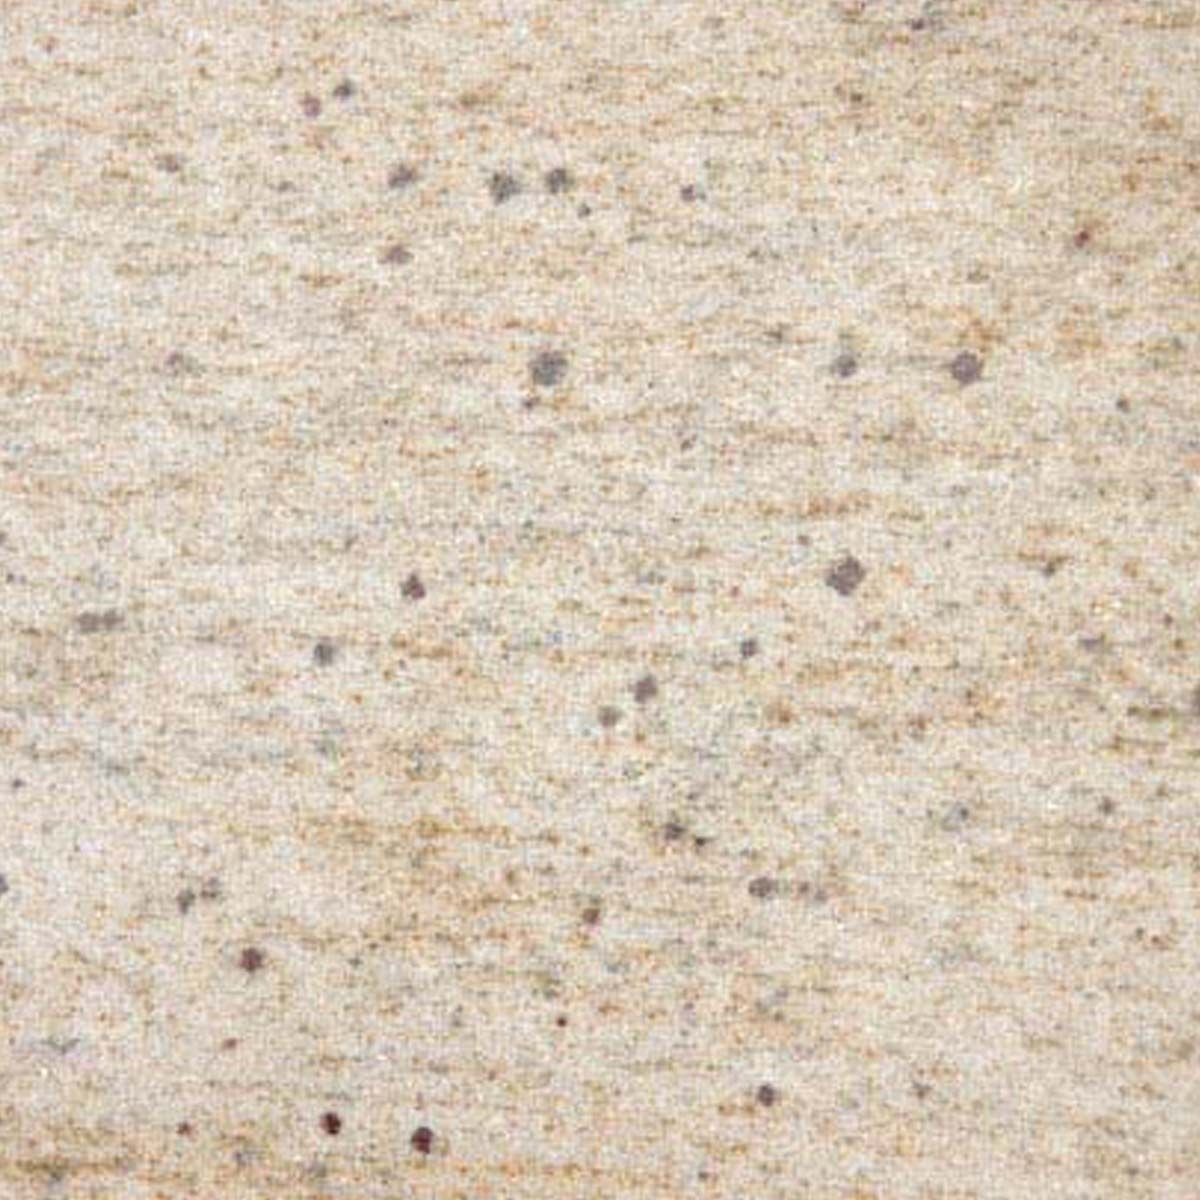 Kashmir Gold Granite Kitchen Kashmir Gold Granite Tile Slabs Prefabricated Countertops